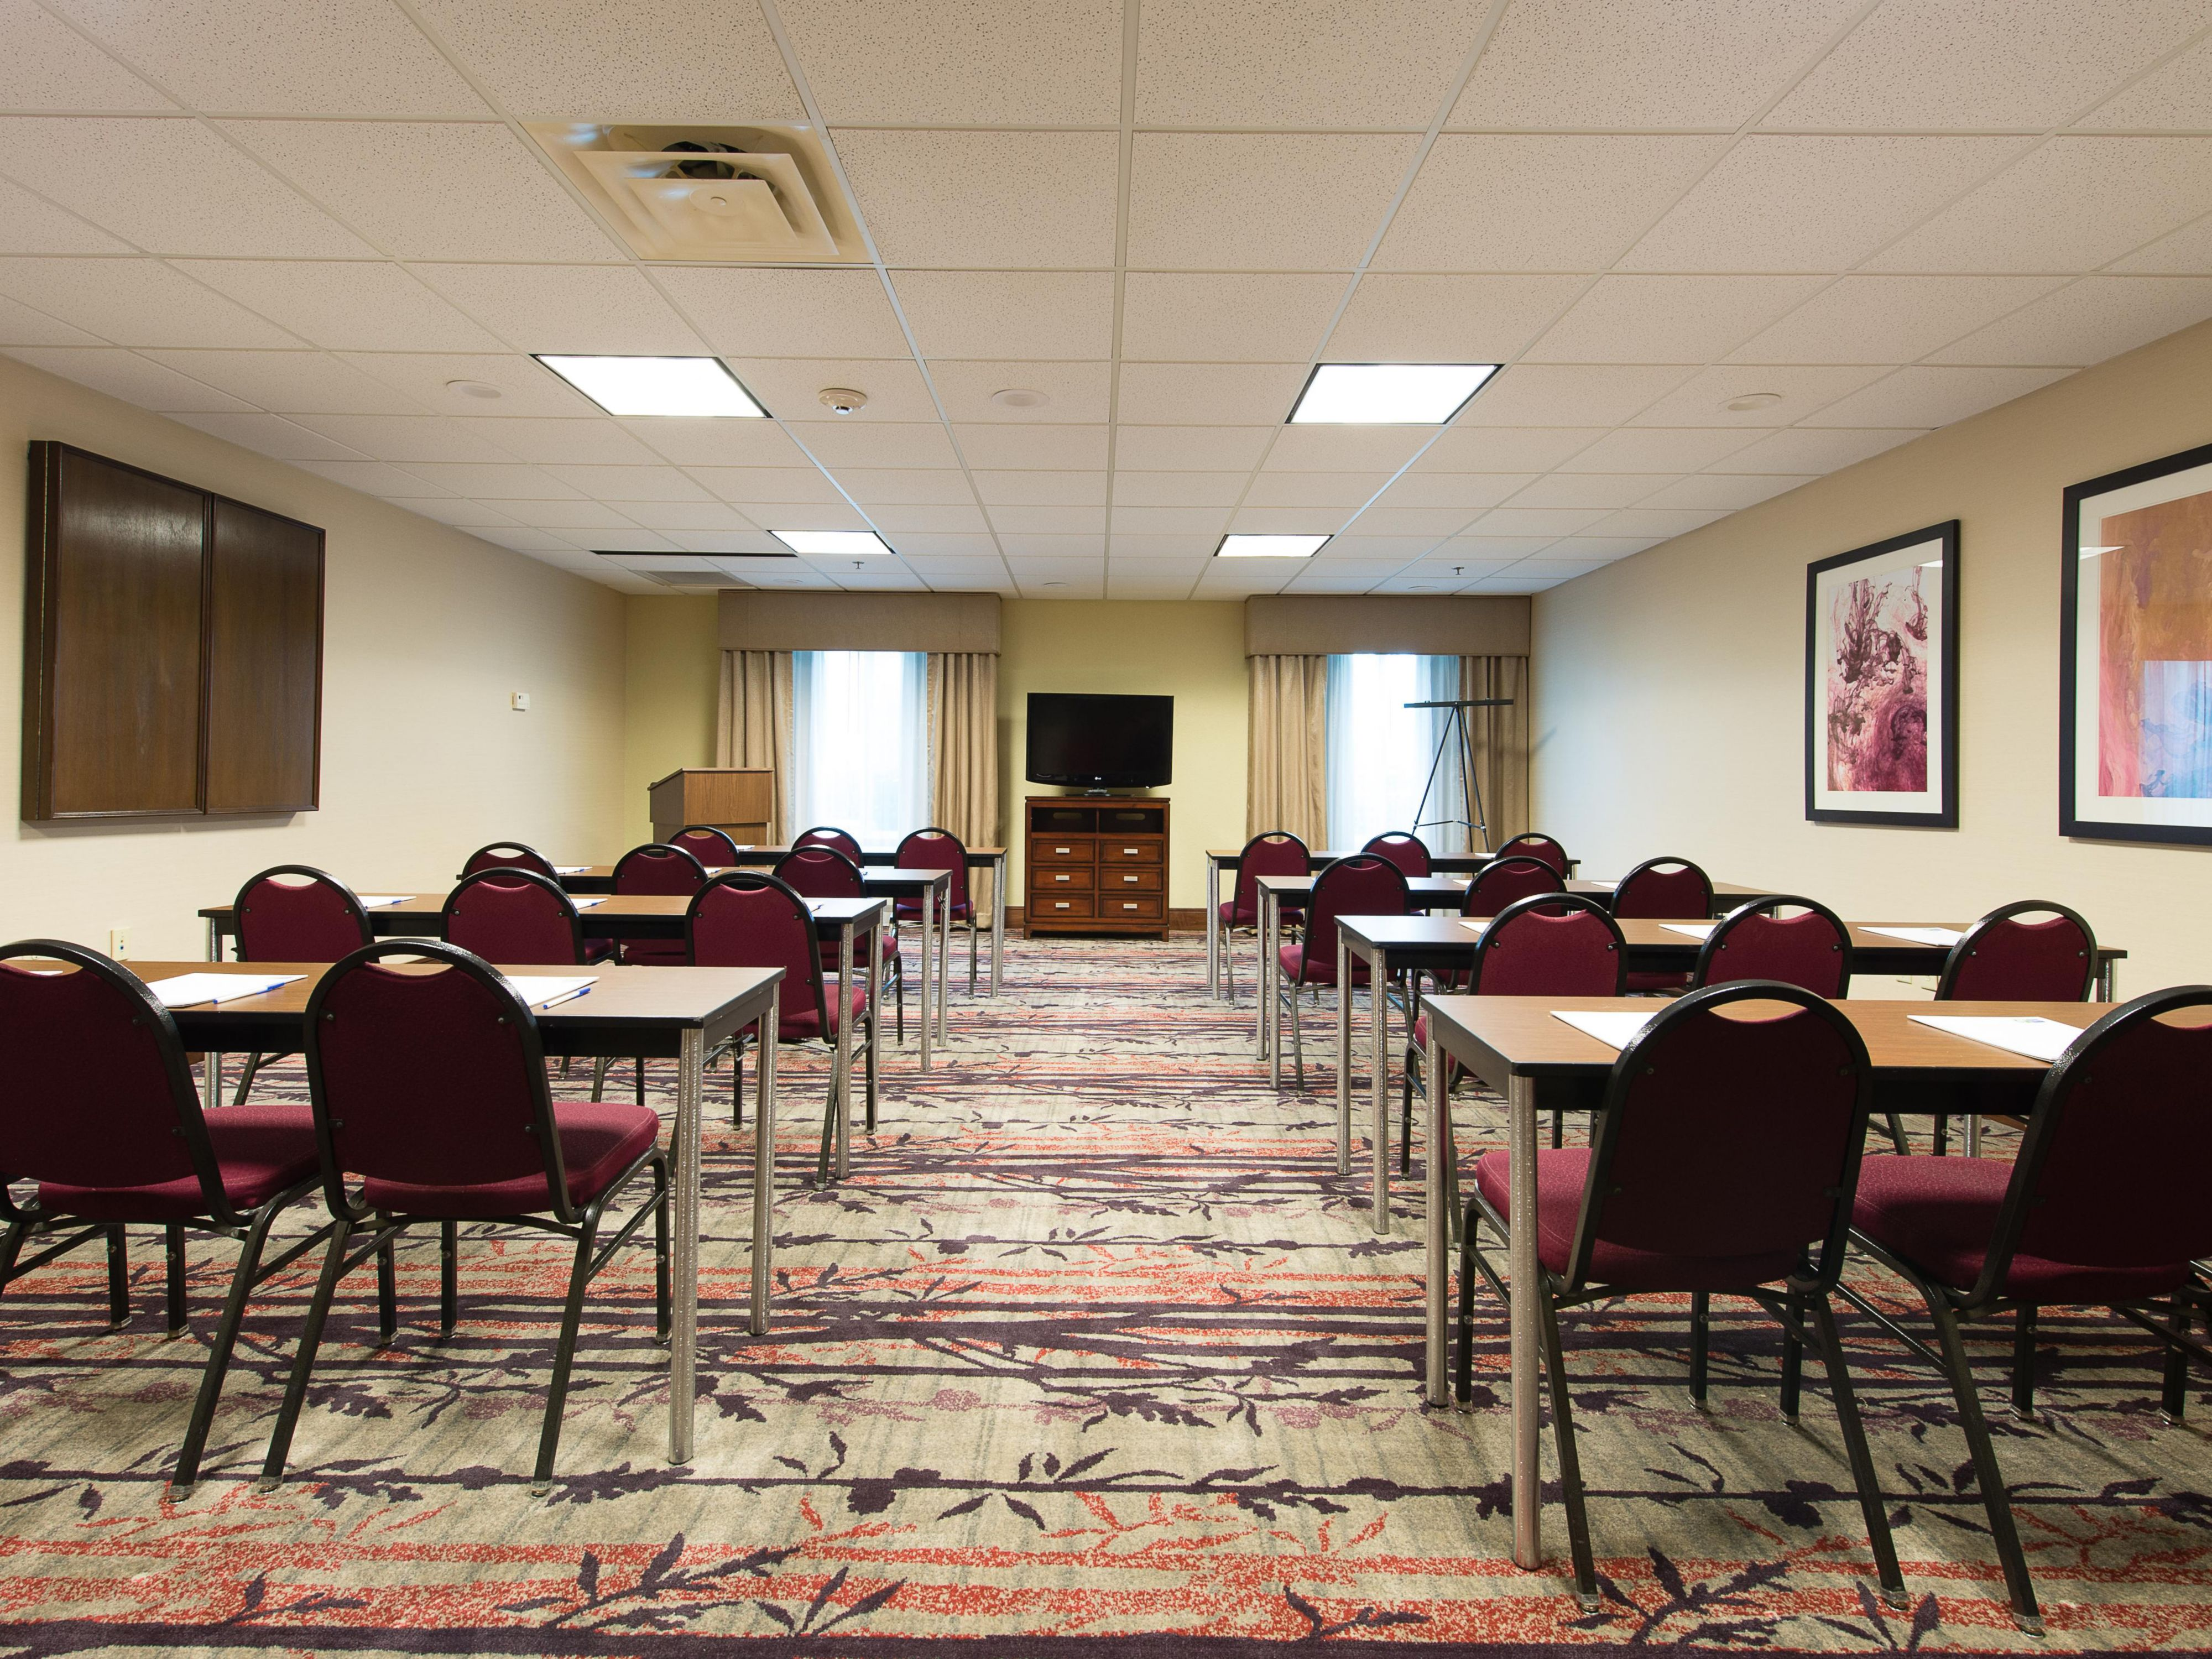 Meeting Room - Perfect for small groups